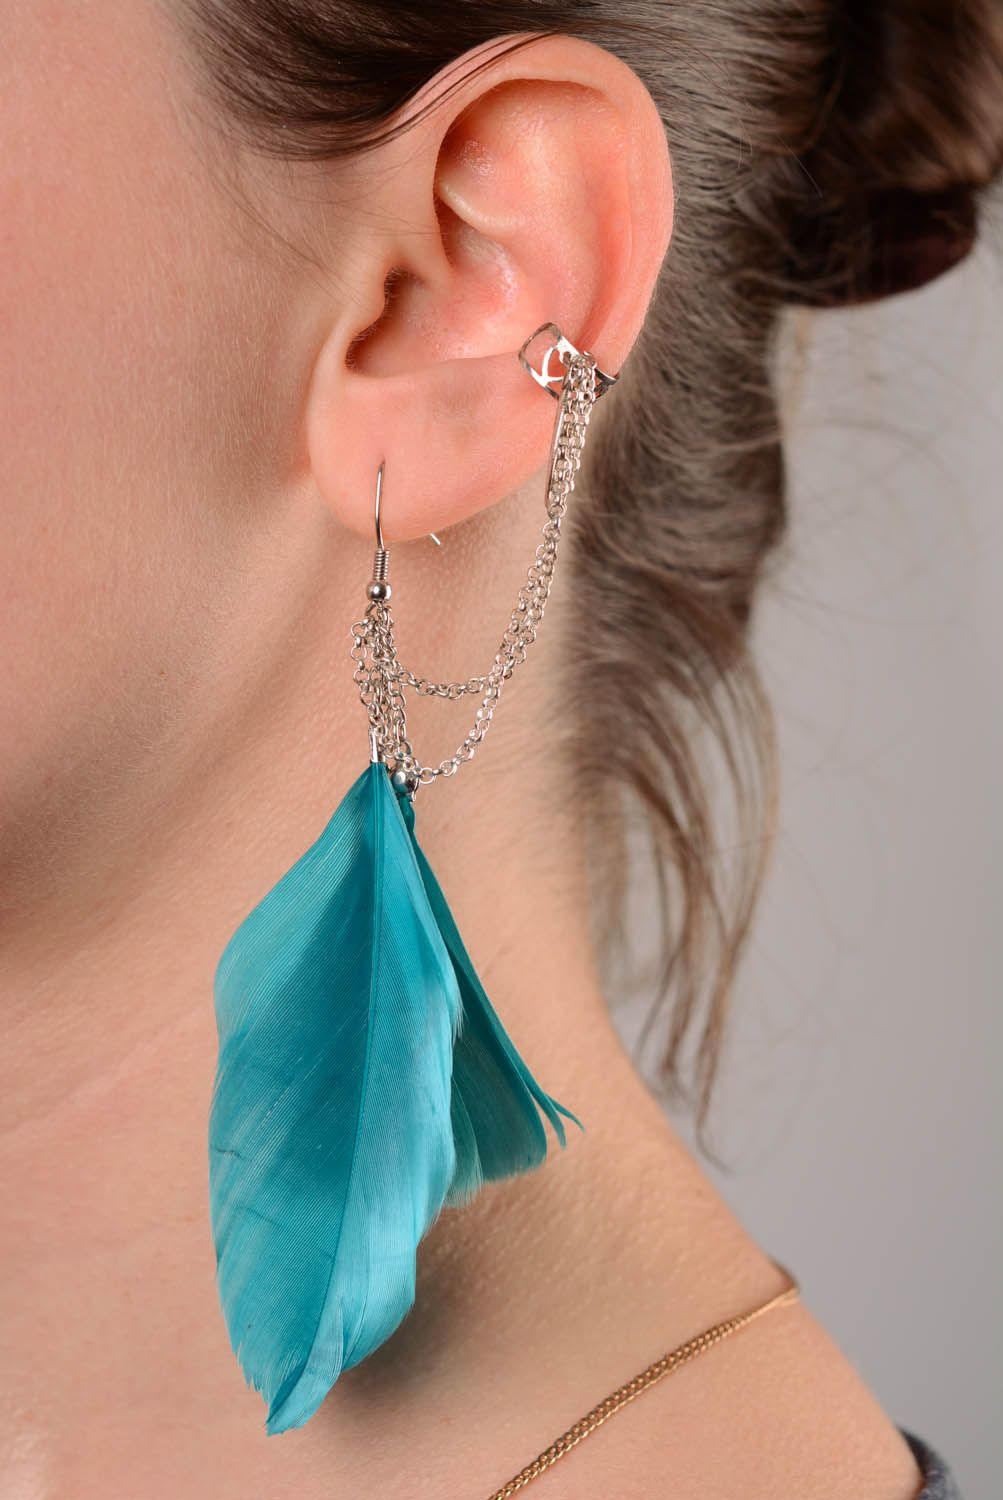 Homemade cuff earrings Feathers photo 3